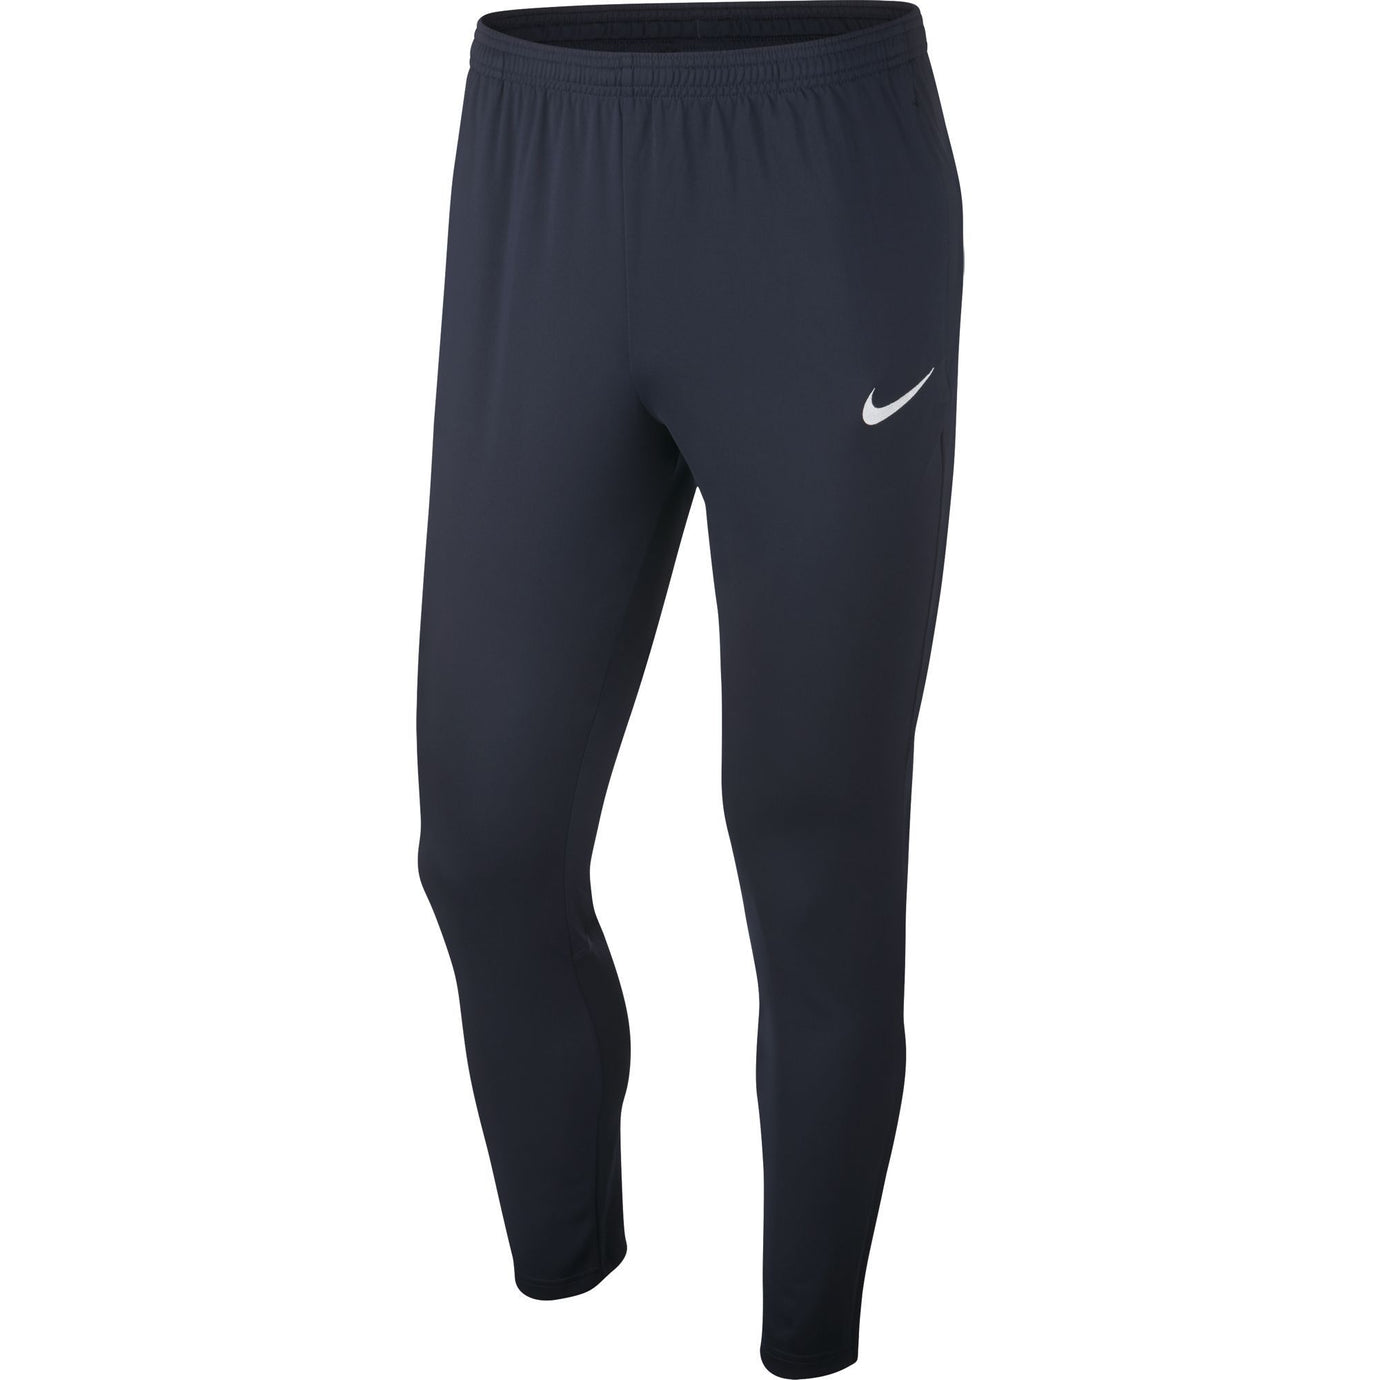 NIKE JR ACADEMY18 DRY-FIT PANT OBSIDIAN/WHITE